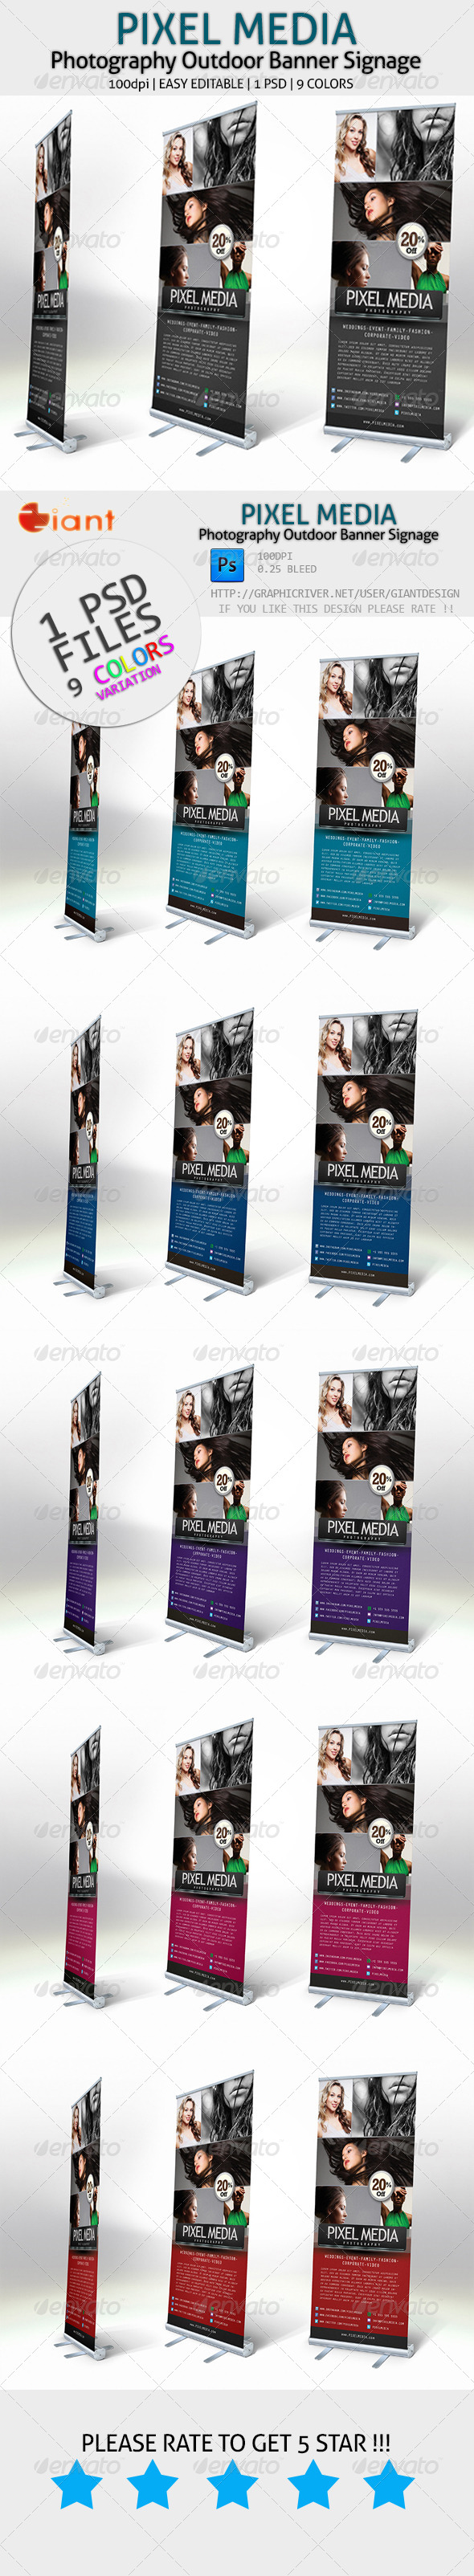 Pixel Media - Photography Outdoor Banner Signage - Signage Print Templates